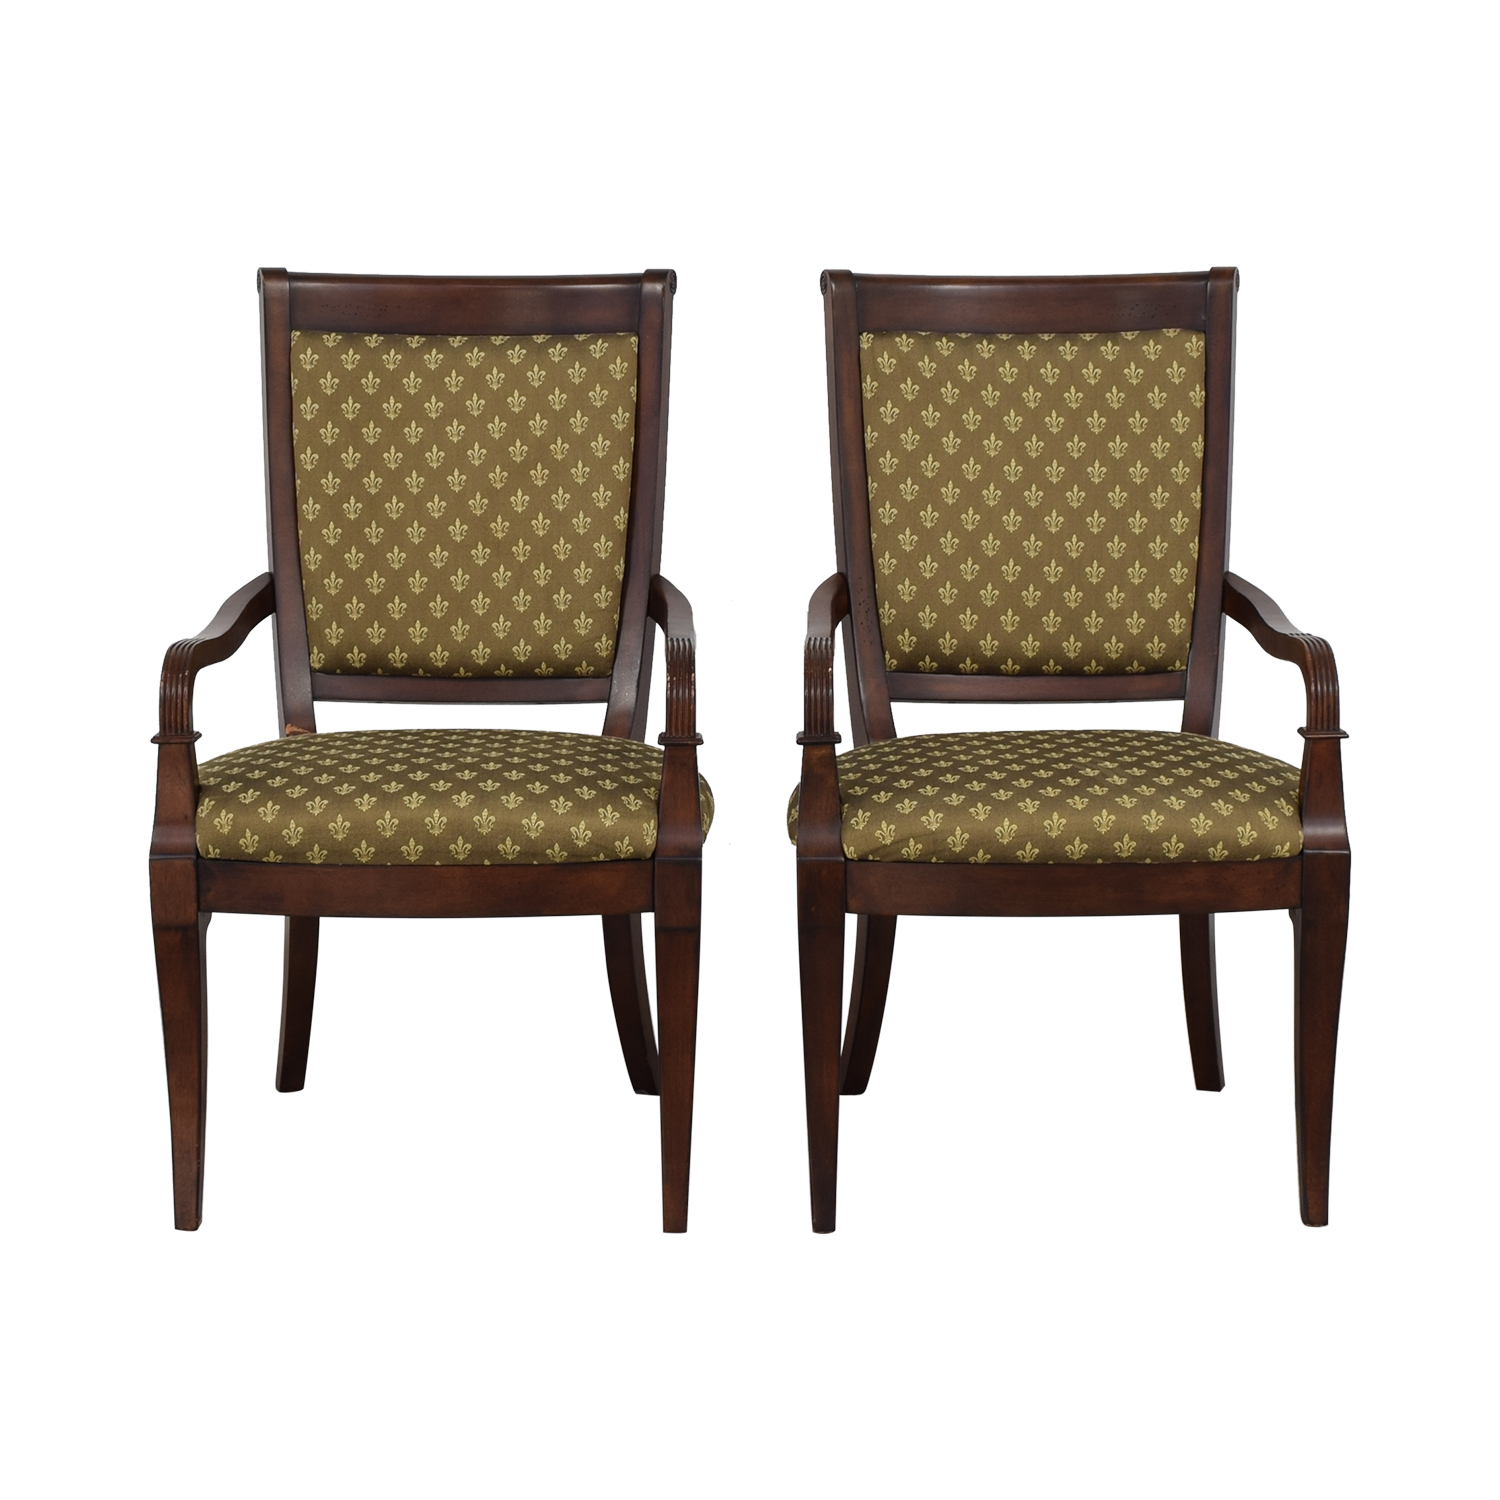 Bassett Furniture Bassett Furniture Upholstered Dining Arm Chairs dimensions